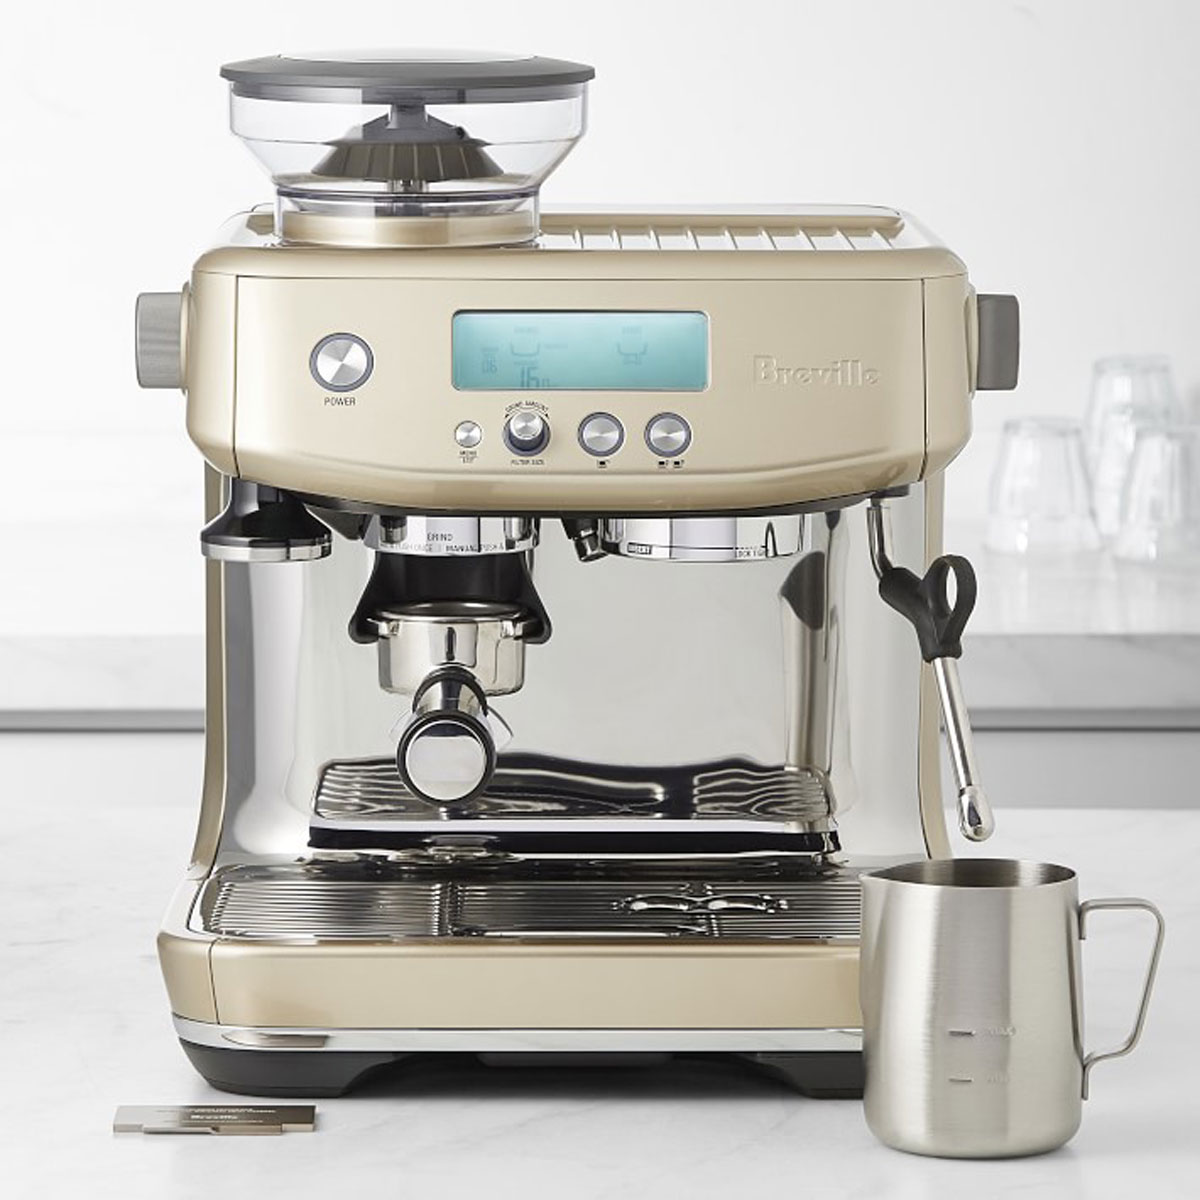 Breville S Newest Color Will Make Your Kitchen The Coolest